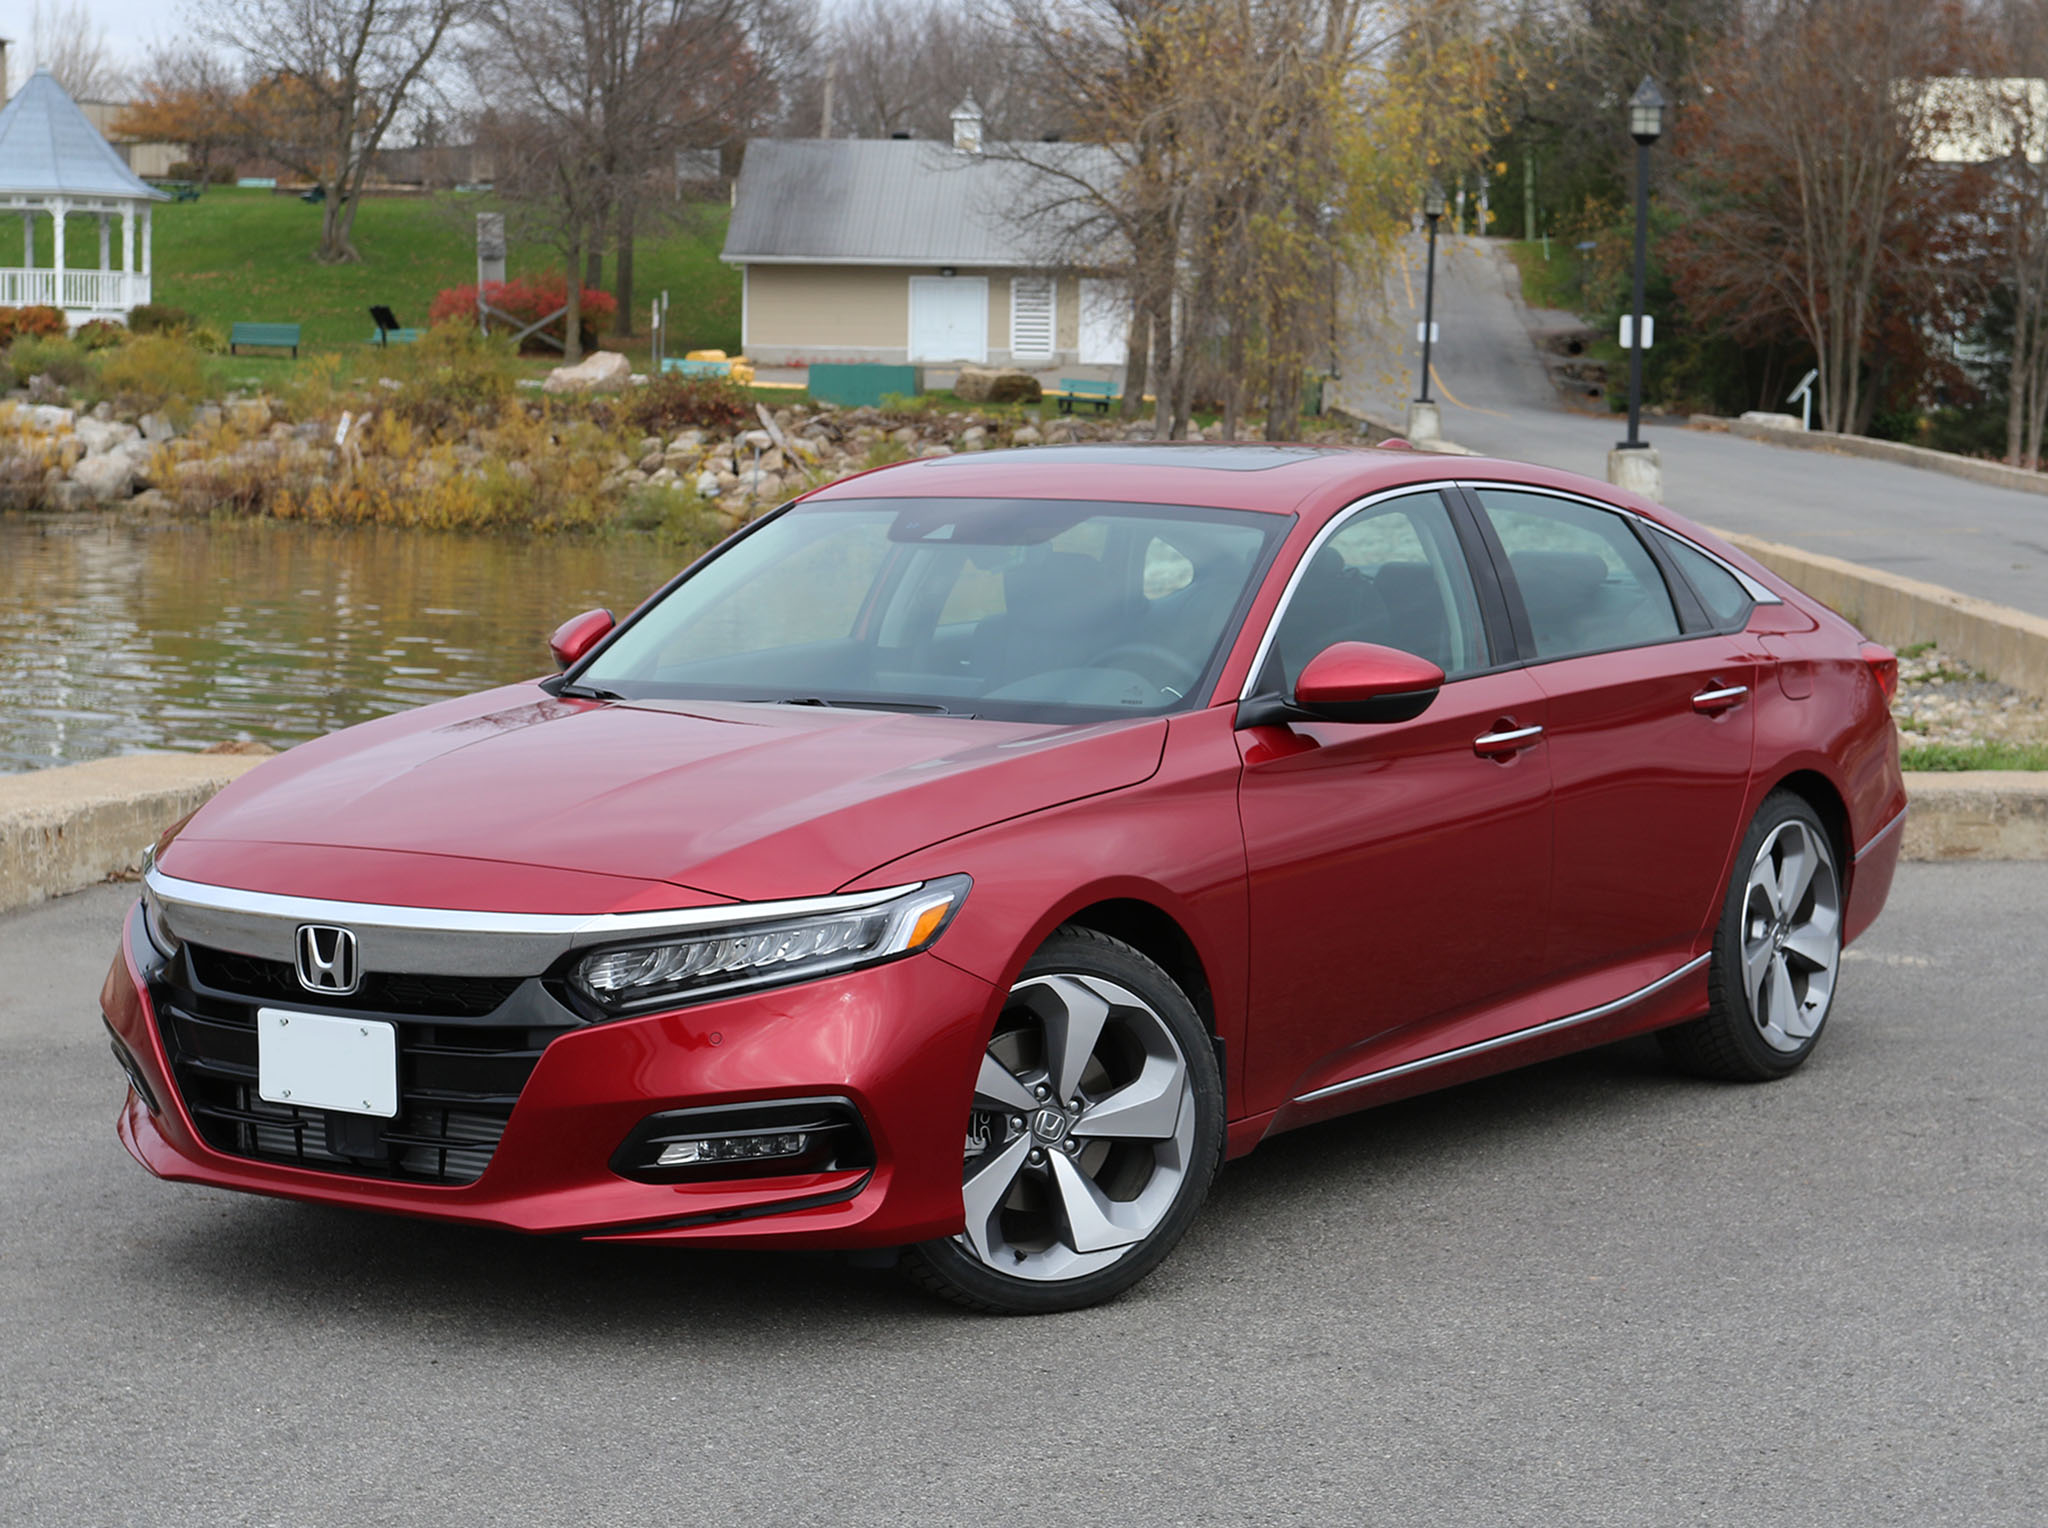 Honda accord 2018 volution r ussie prot gez for New honda accord 2018